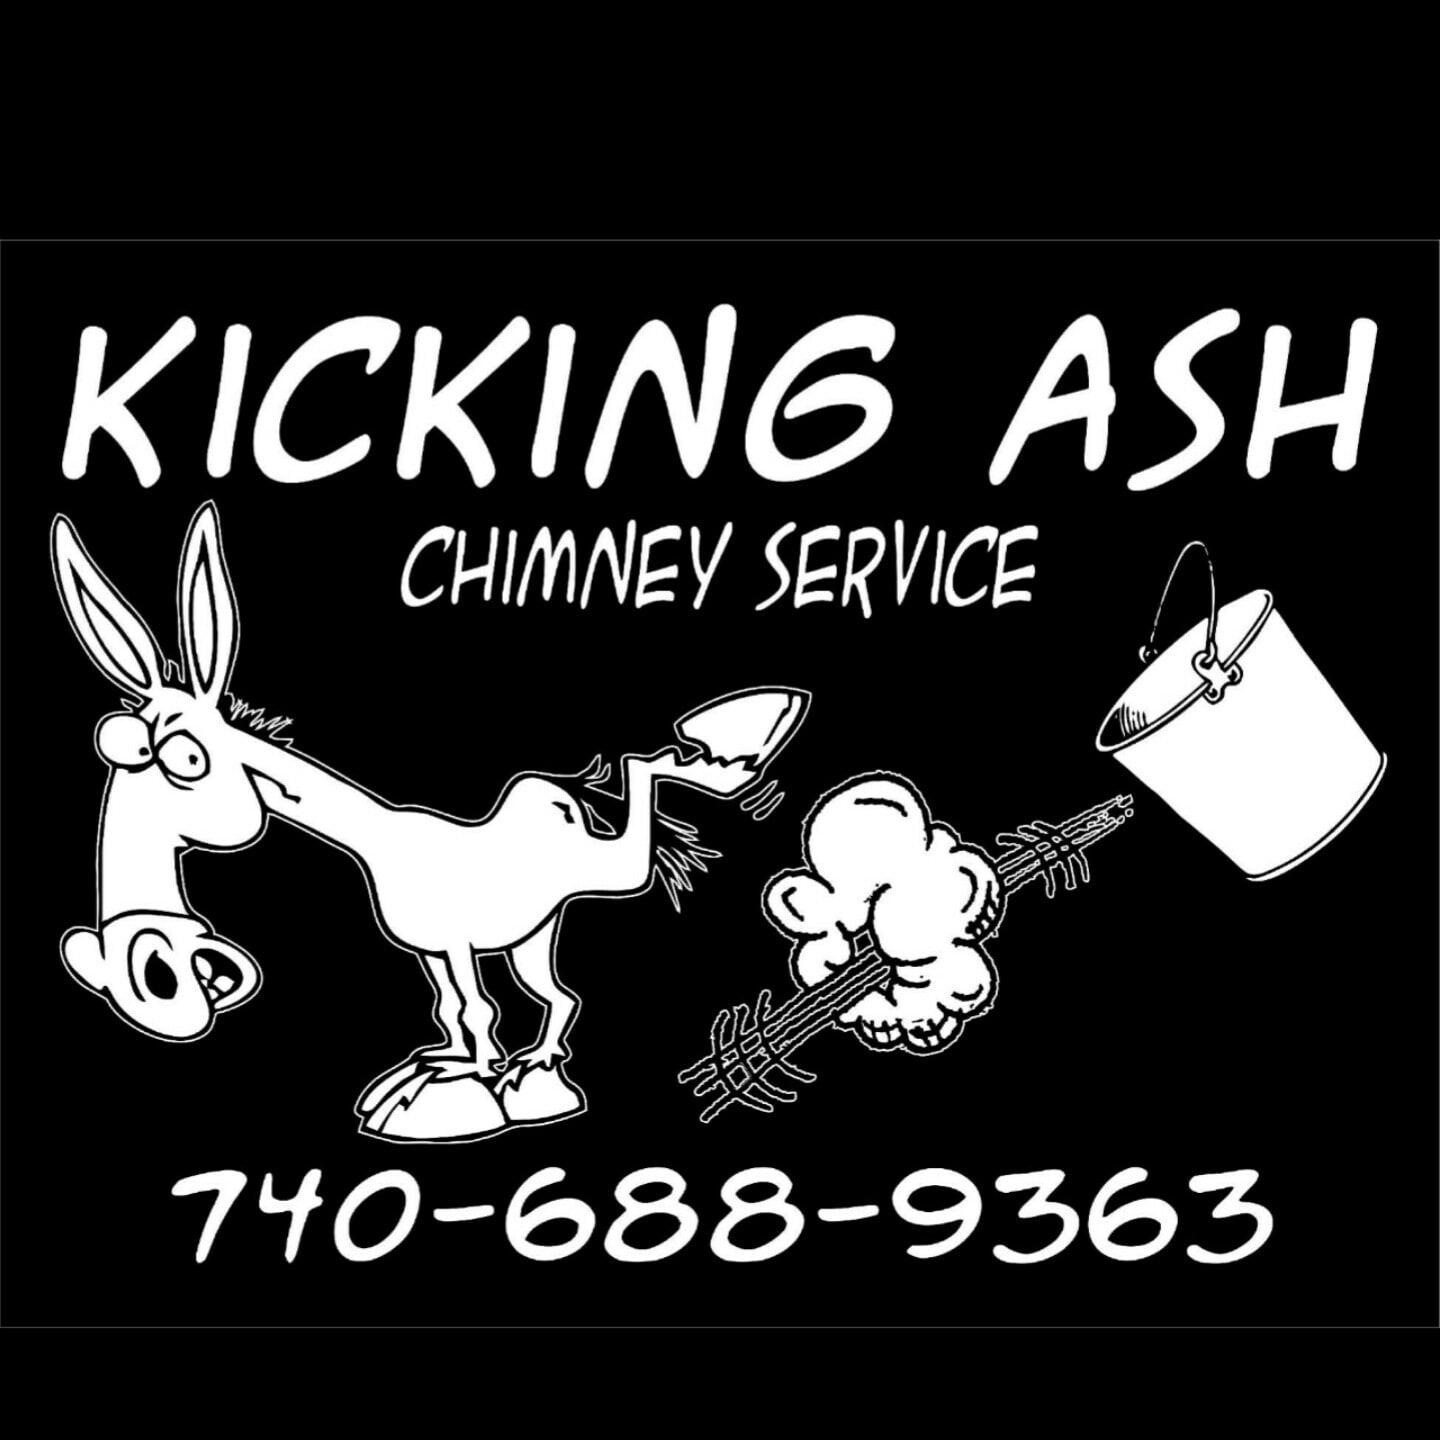 Kicking Ash Chimney Svc